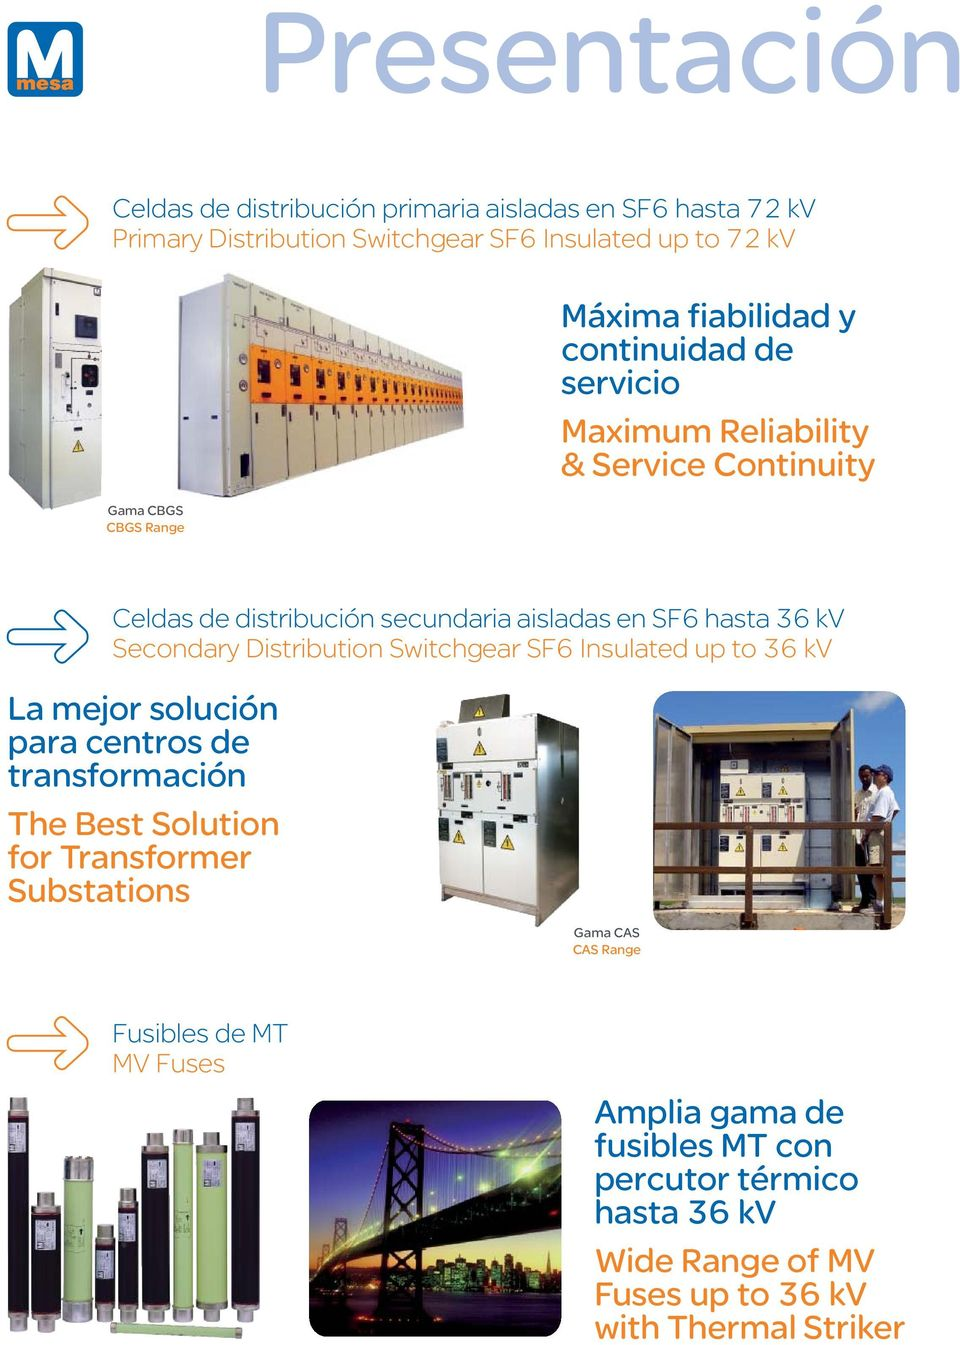 Secondary Distribution Switchgear SF6 Insulated up to 36 kv La mejor solución para centros de transformación The Best Solution for Transformer